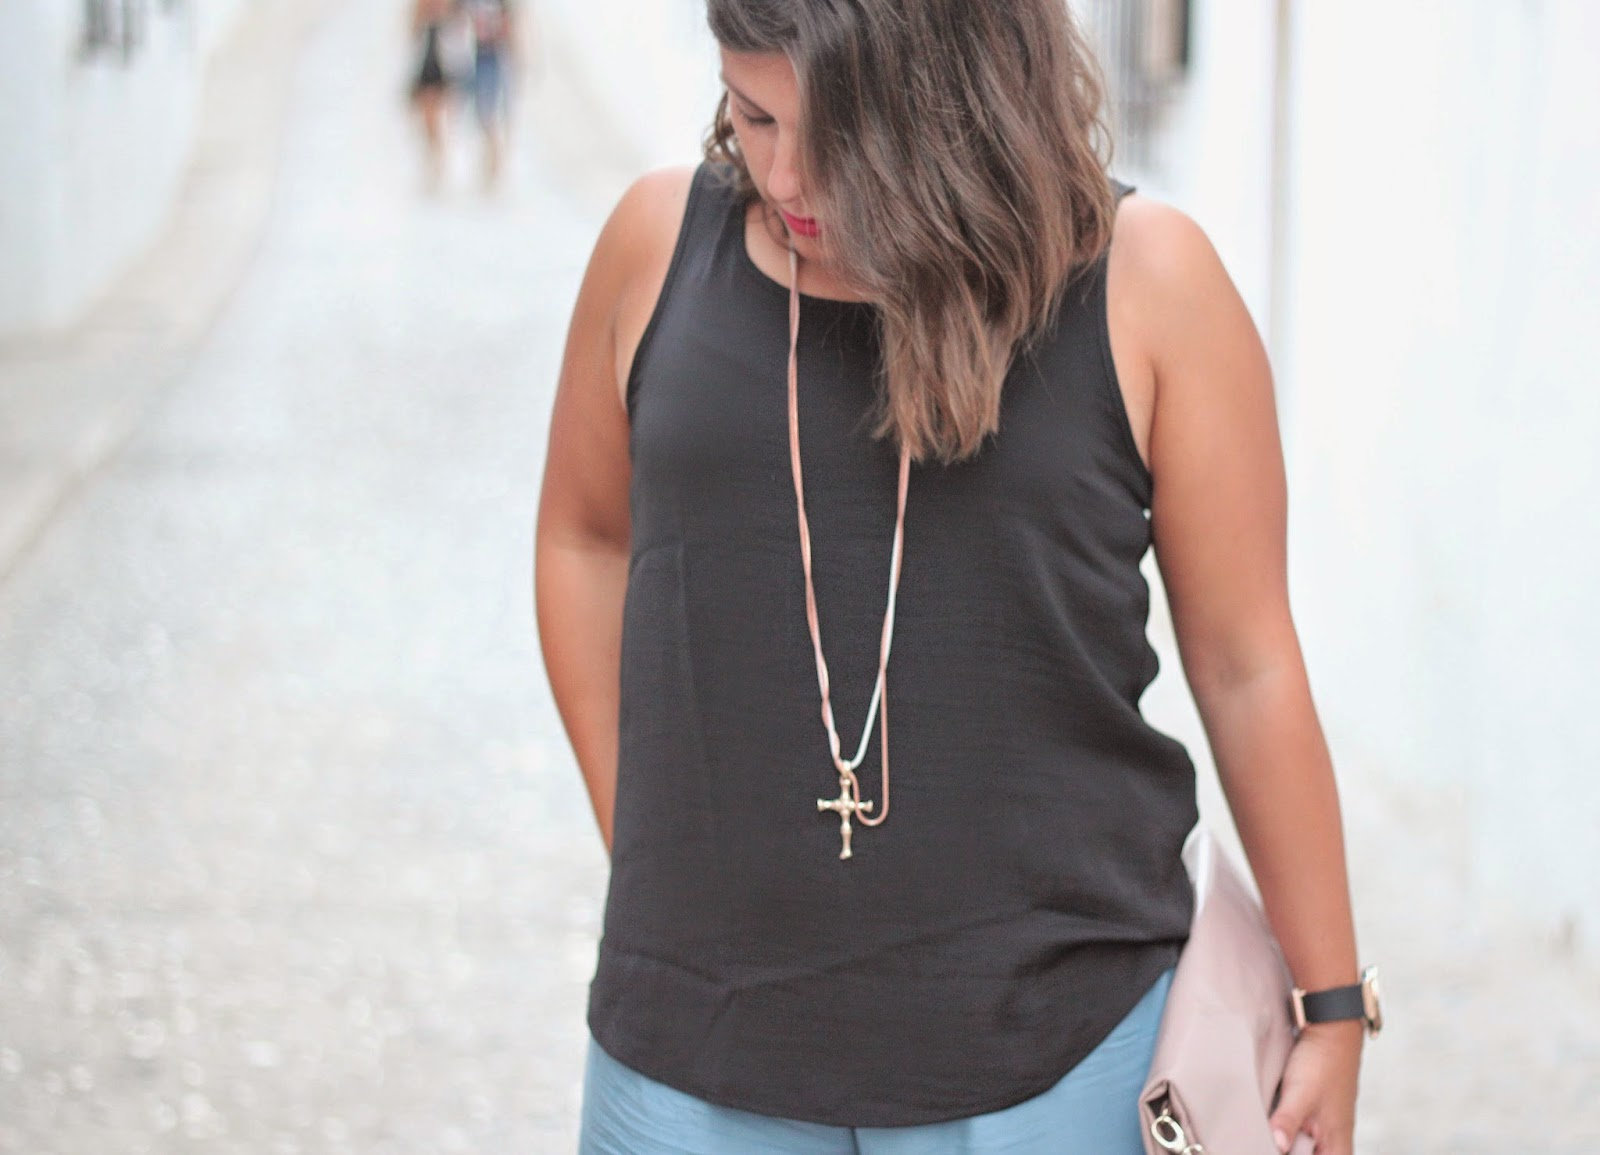 look-street_style-altea-palazzo-renatta&go-top-stradivarius-cruz-aristocrazy